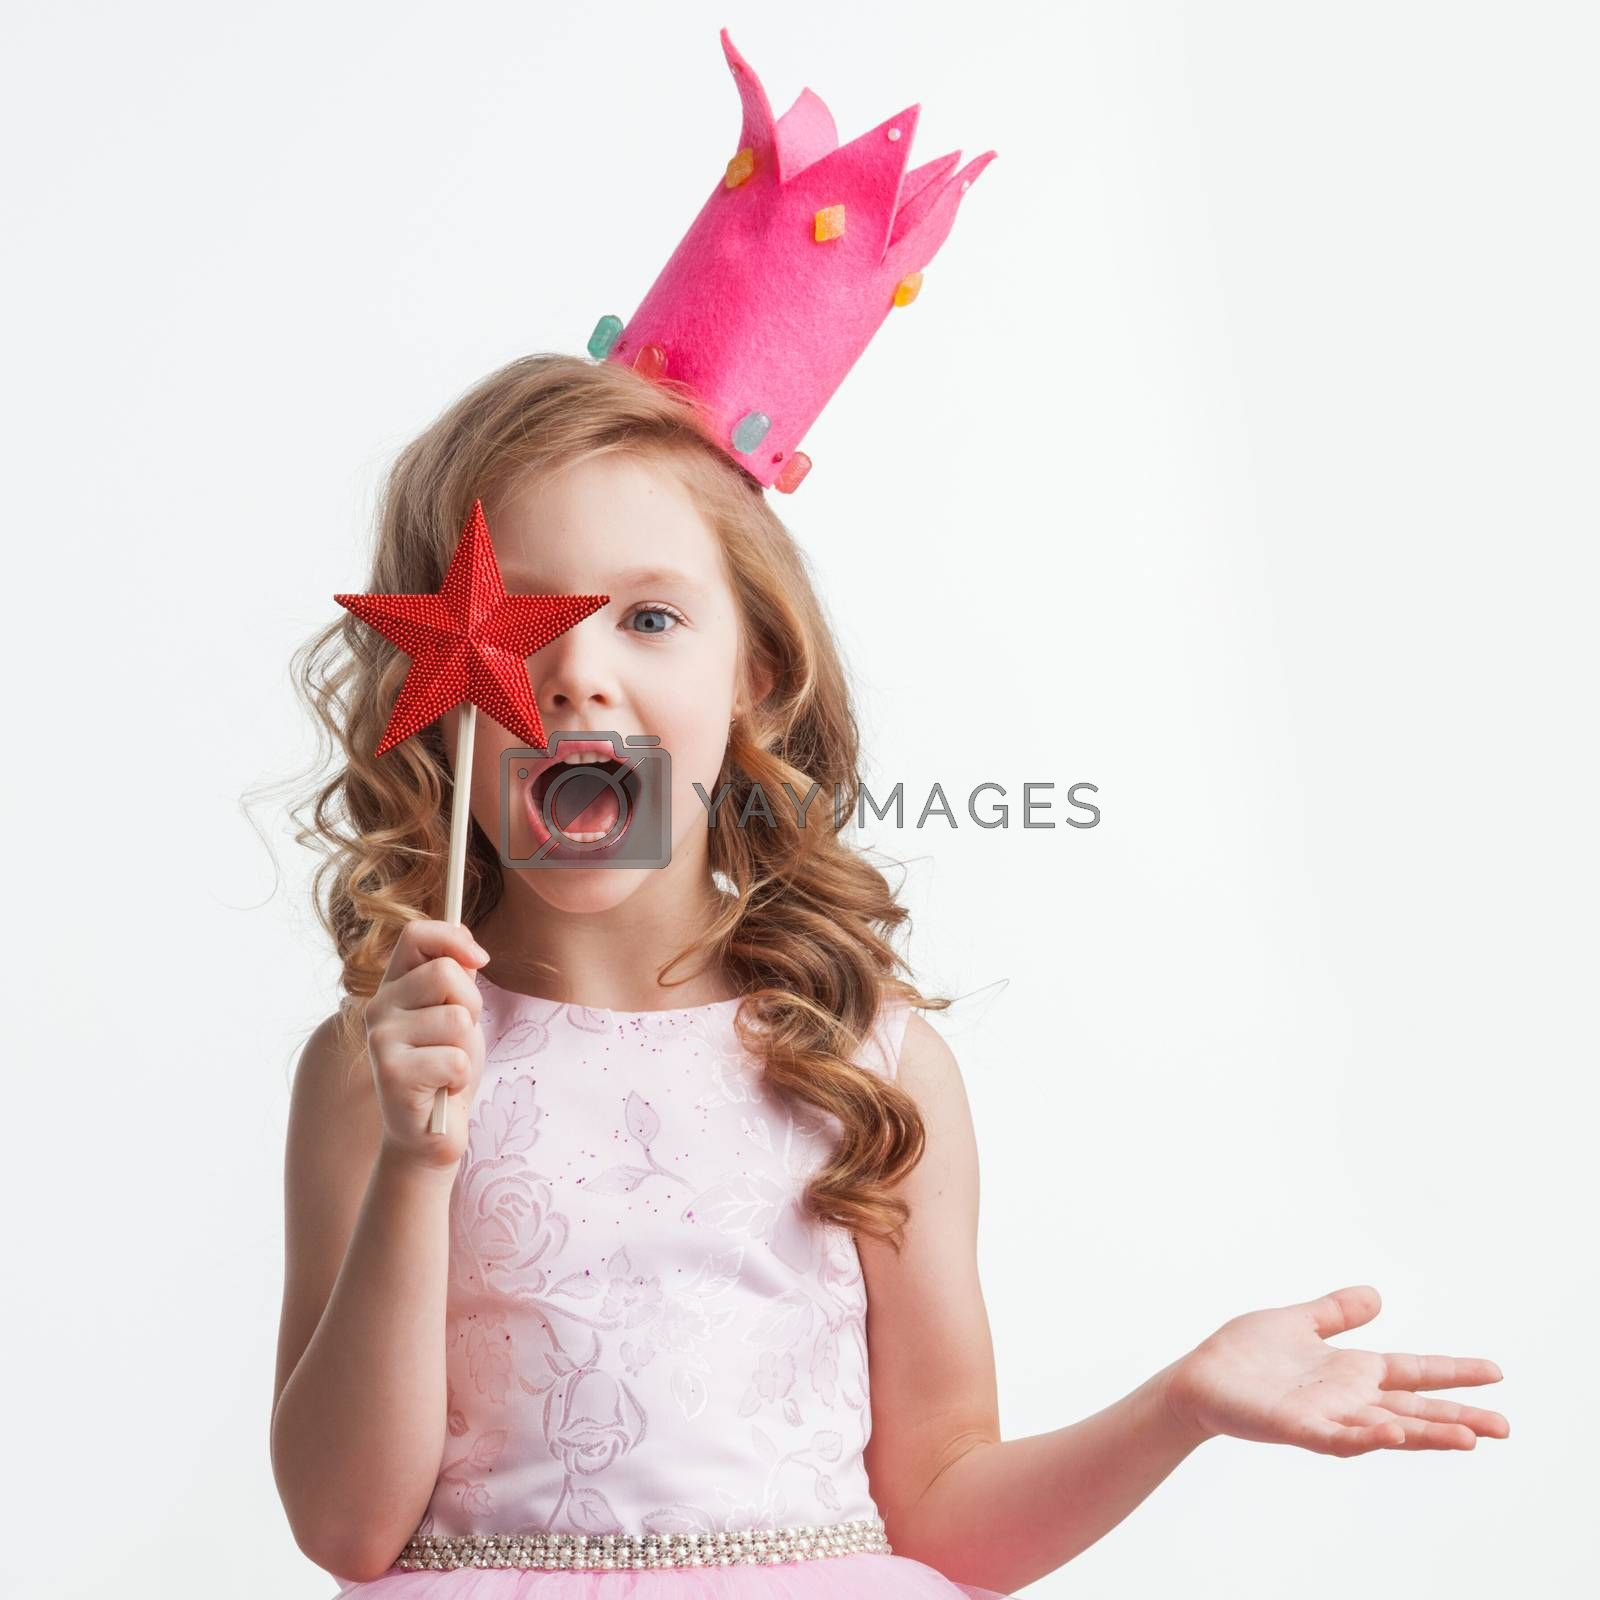 Beautiful little candy princess girl in crown holding star shaped magic wand and making a wish spell isolated on white background